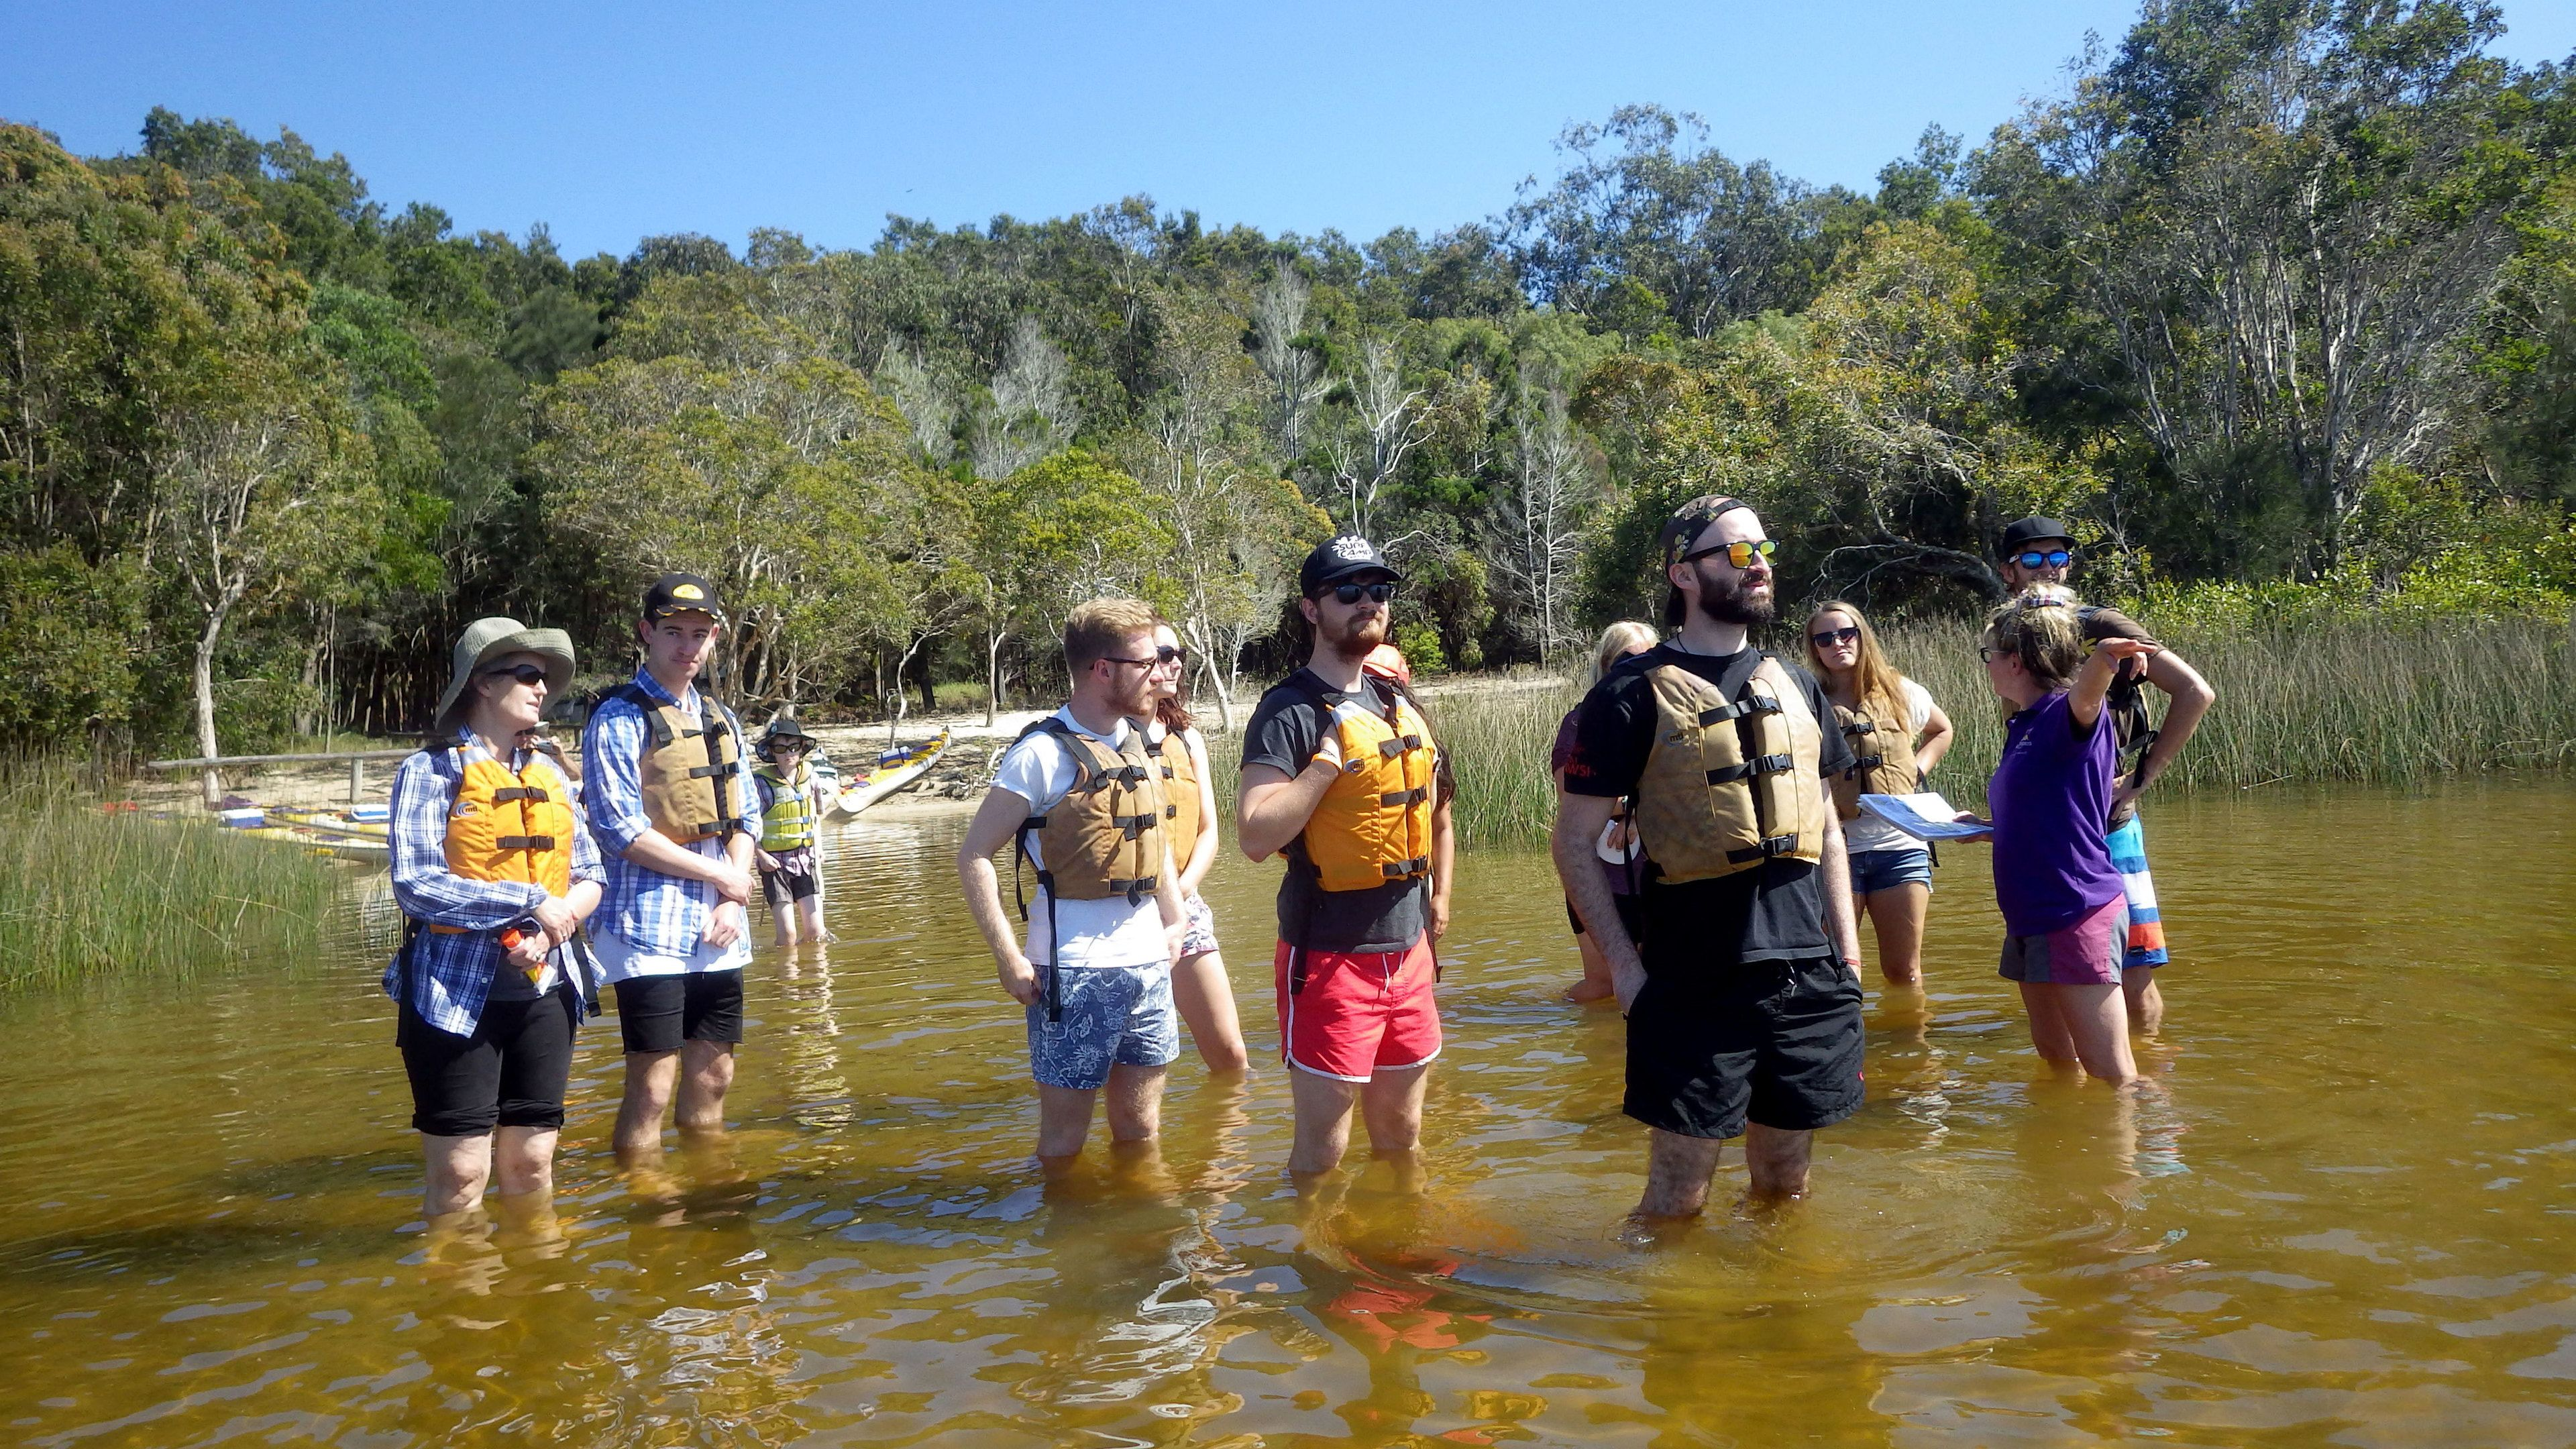 Kayaking group wading in the water in Australia